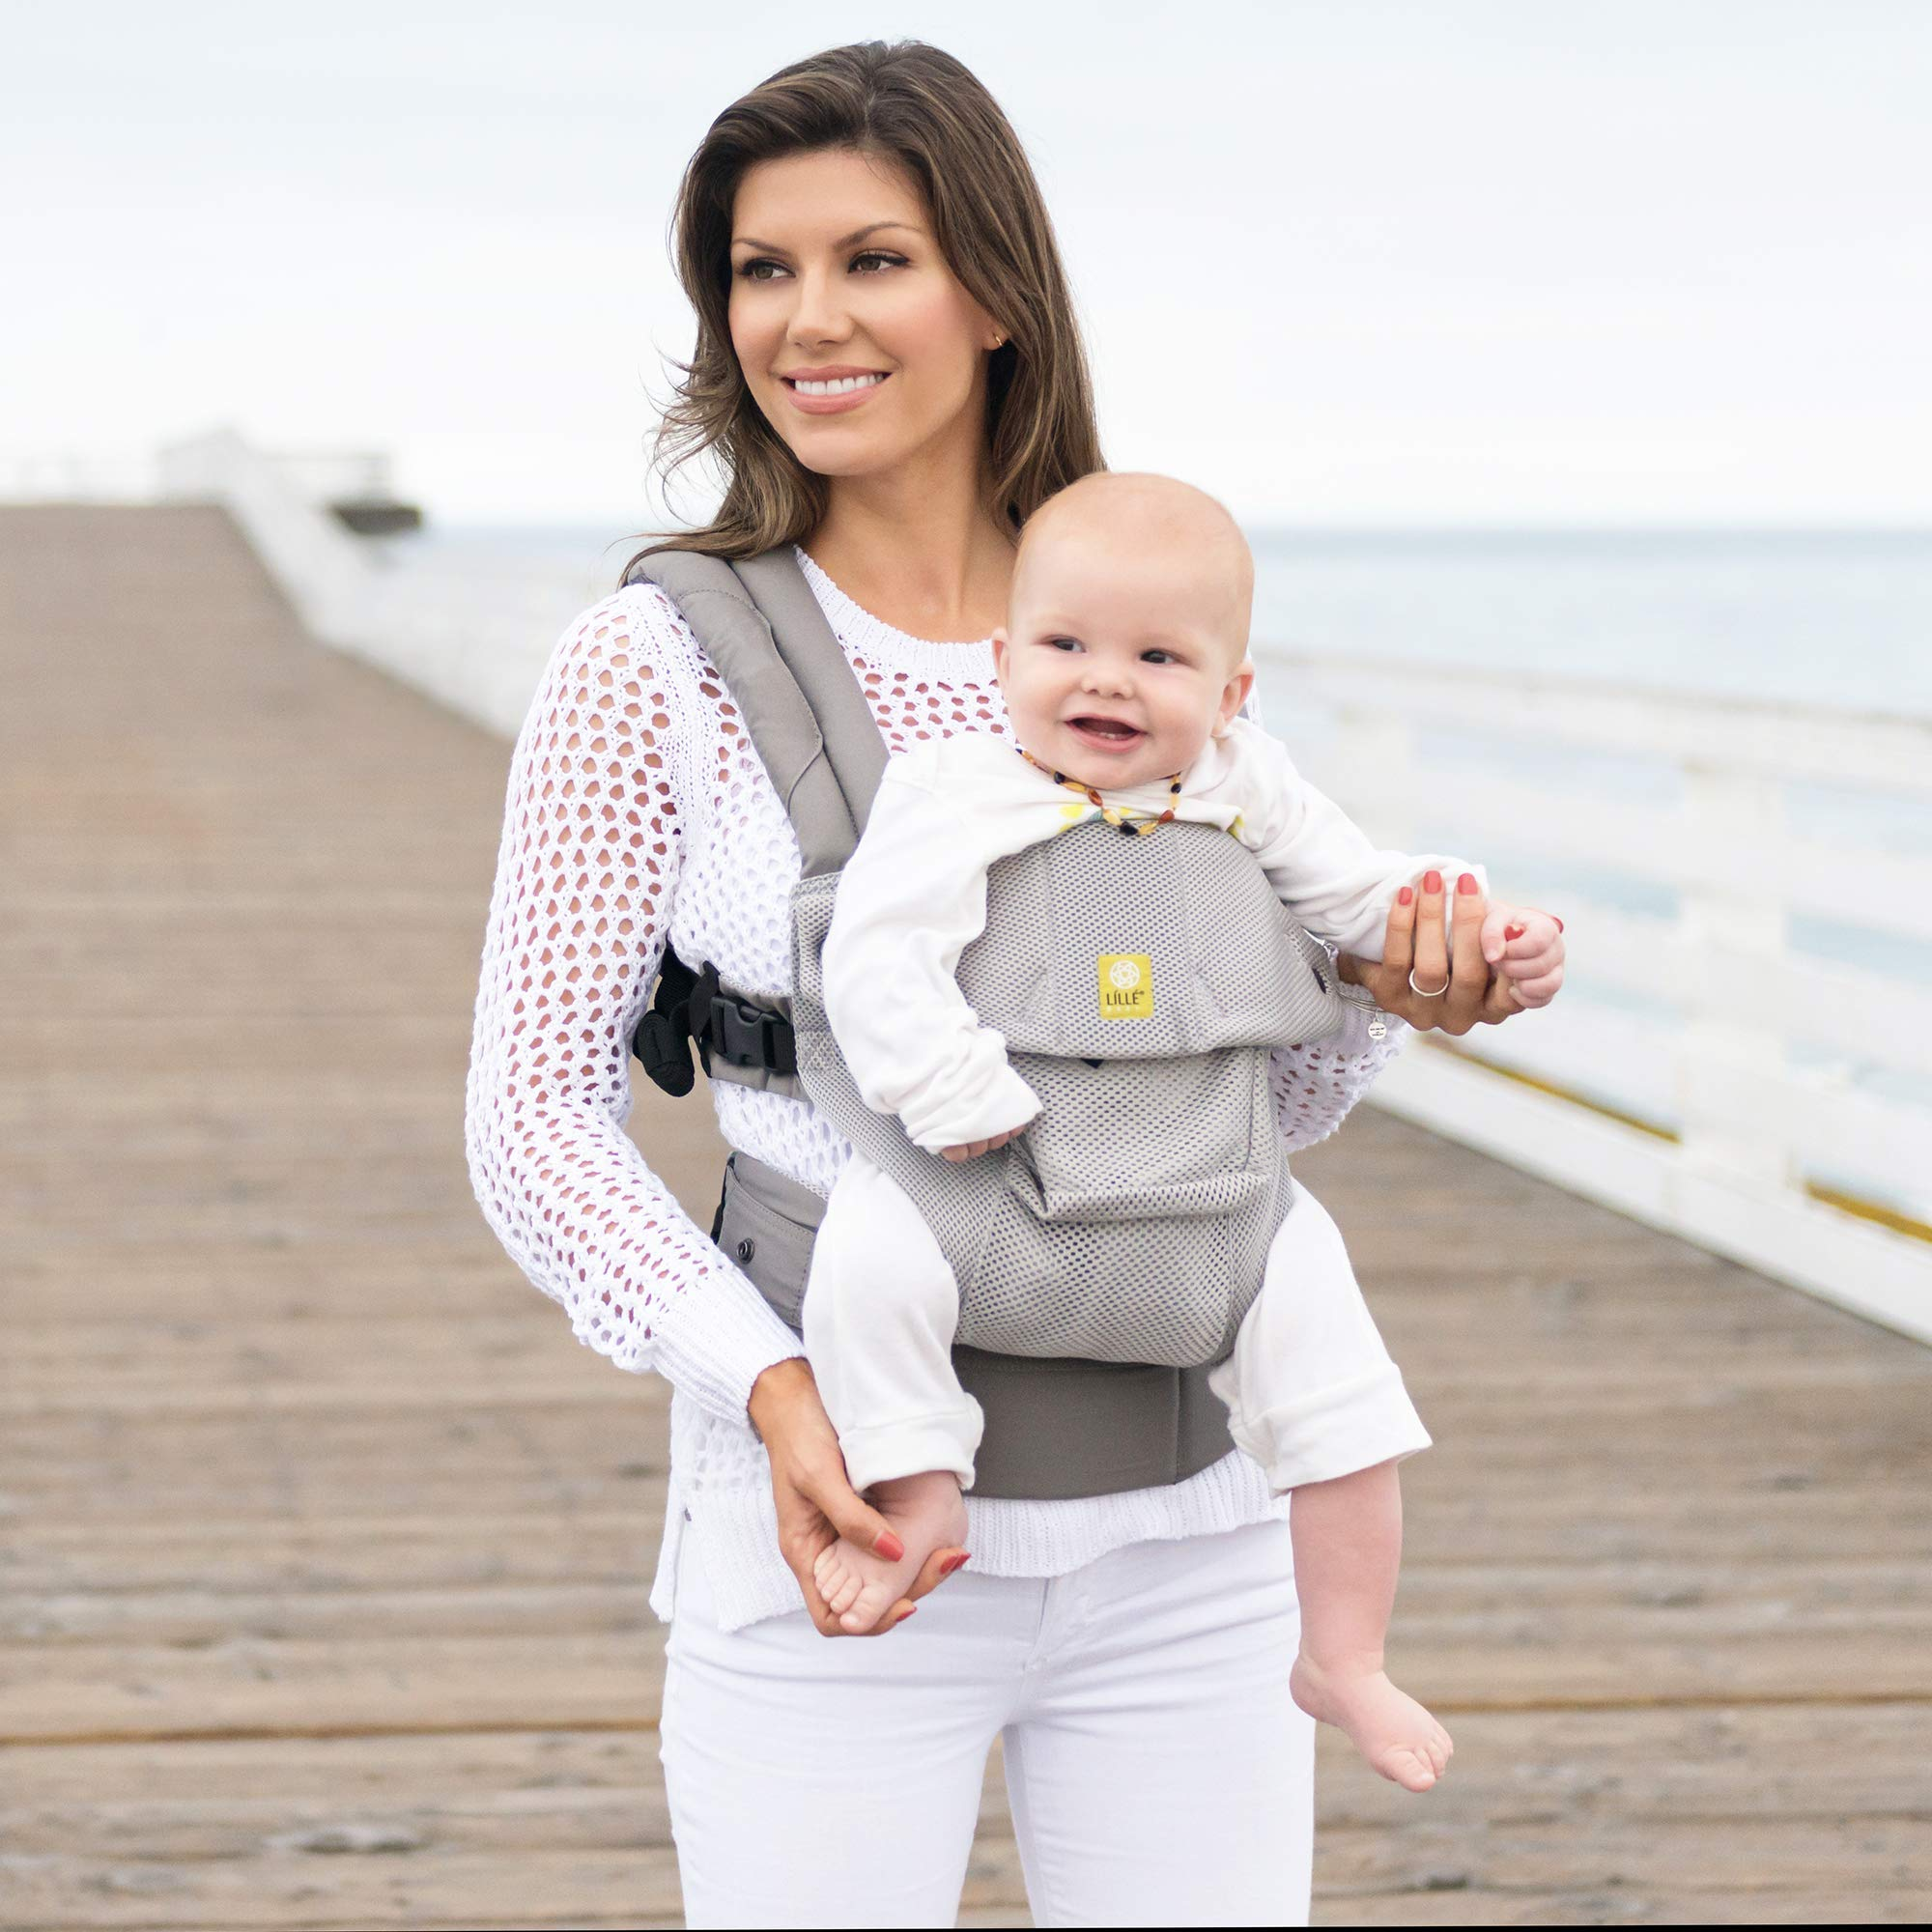 Lillebaby The Complete Airflow 360° Ergonomic Six-Position Baby & Child Carrier, Silver by LILLEbaby (Image #6)